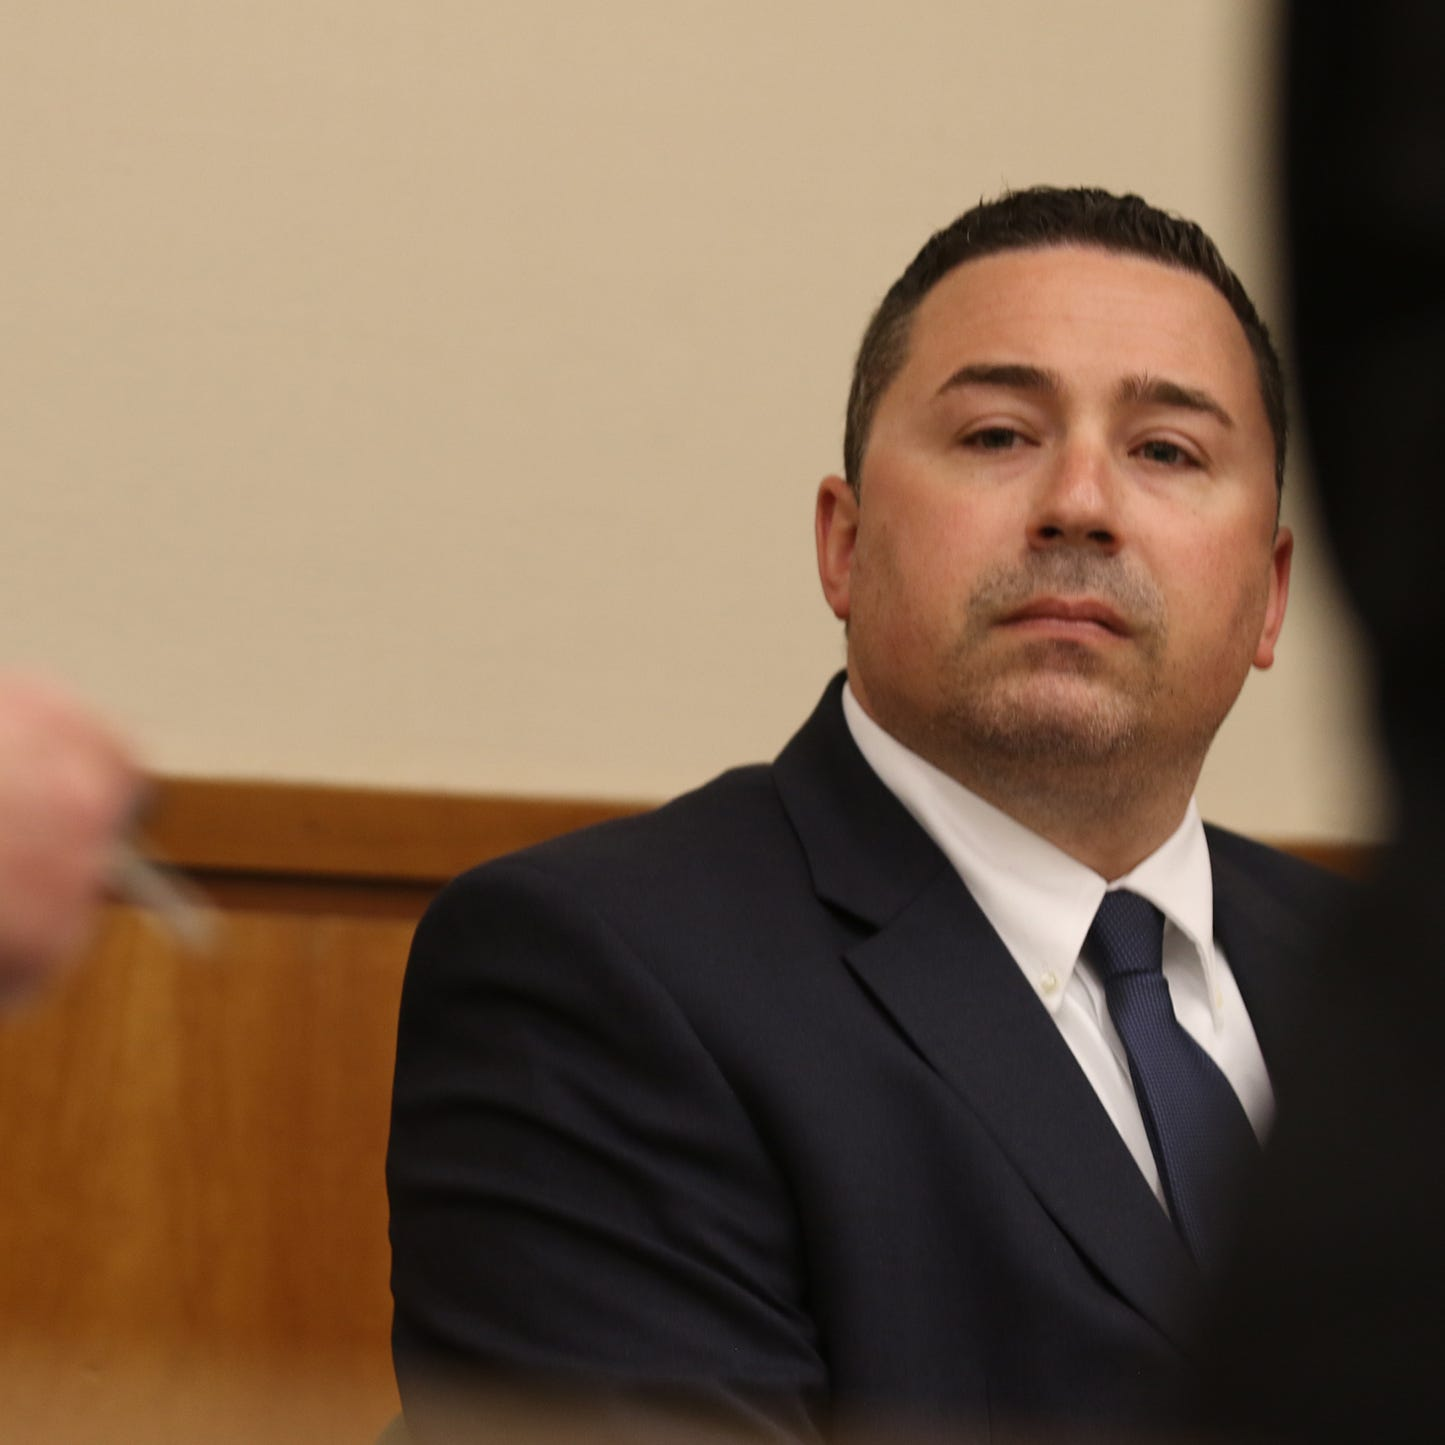 See the video: Trial of RPD officer Sippel opens with raw body cam video of Pate arrest